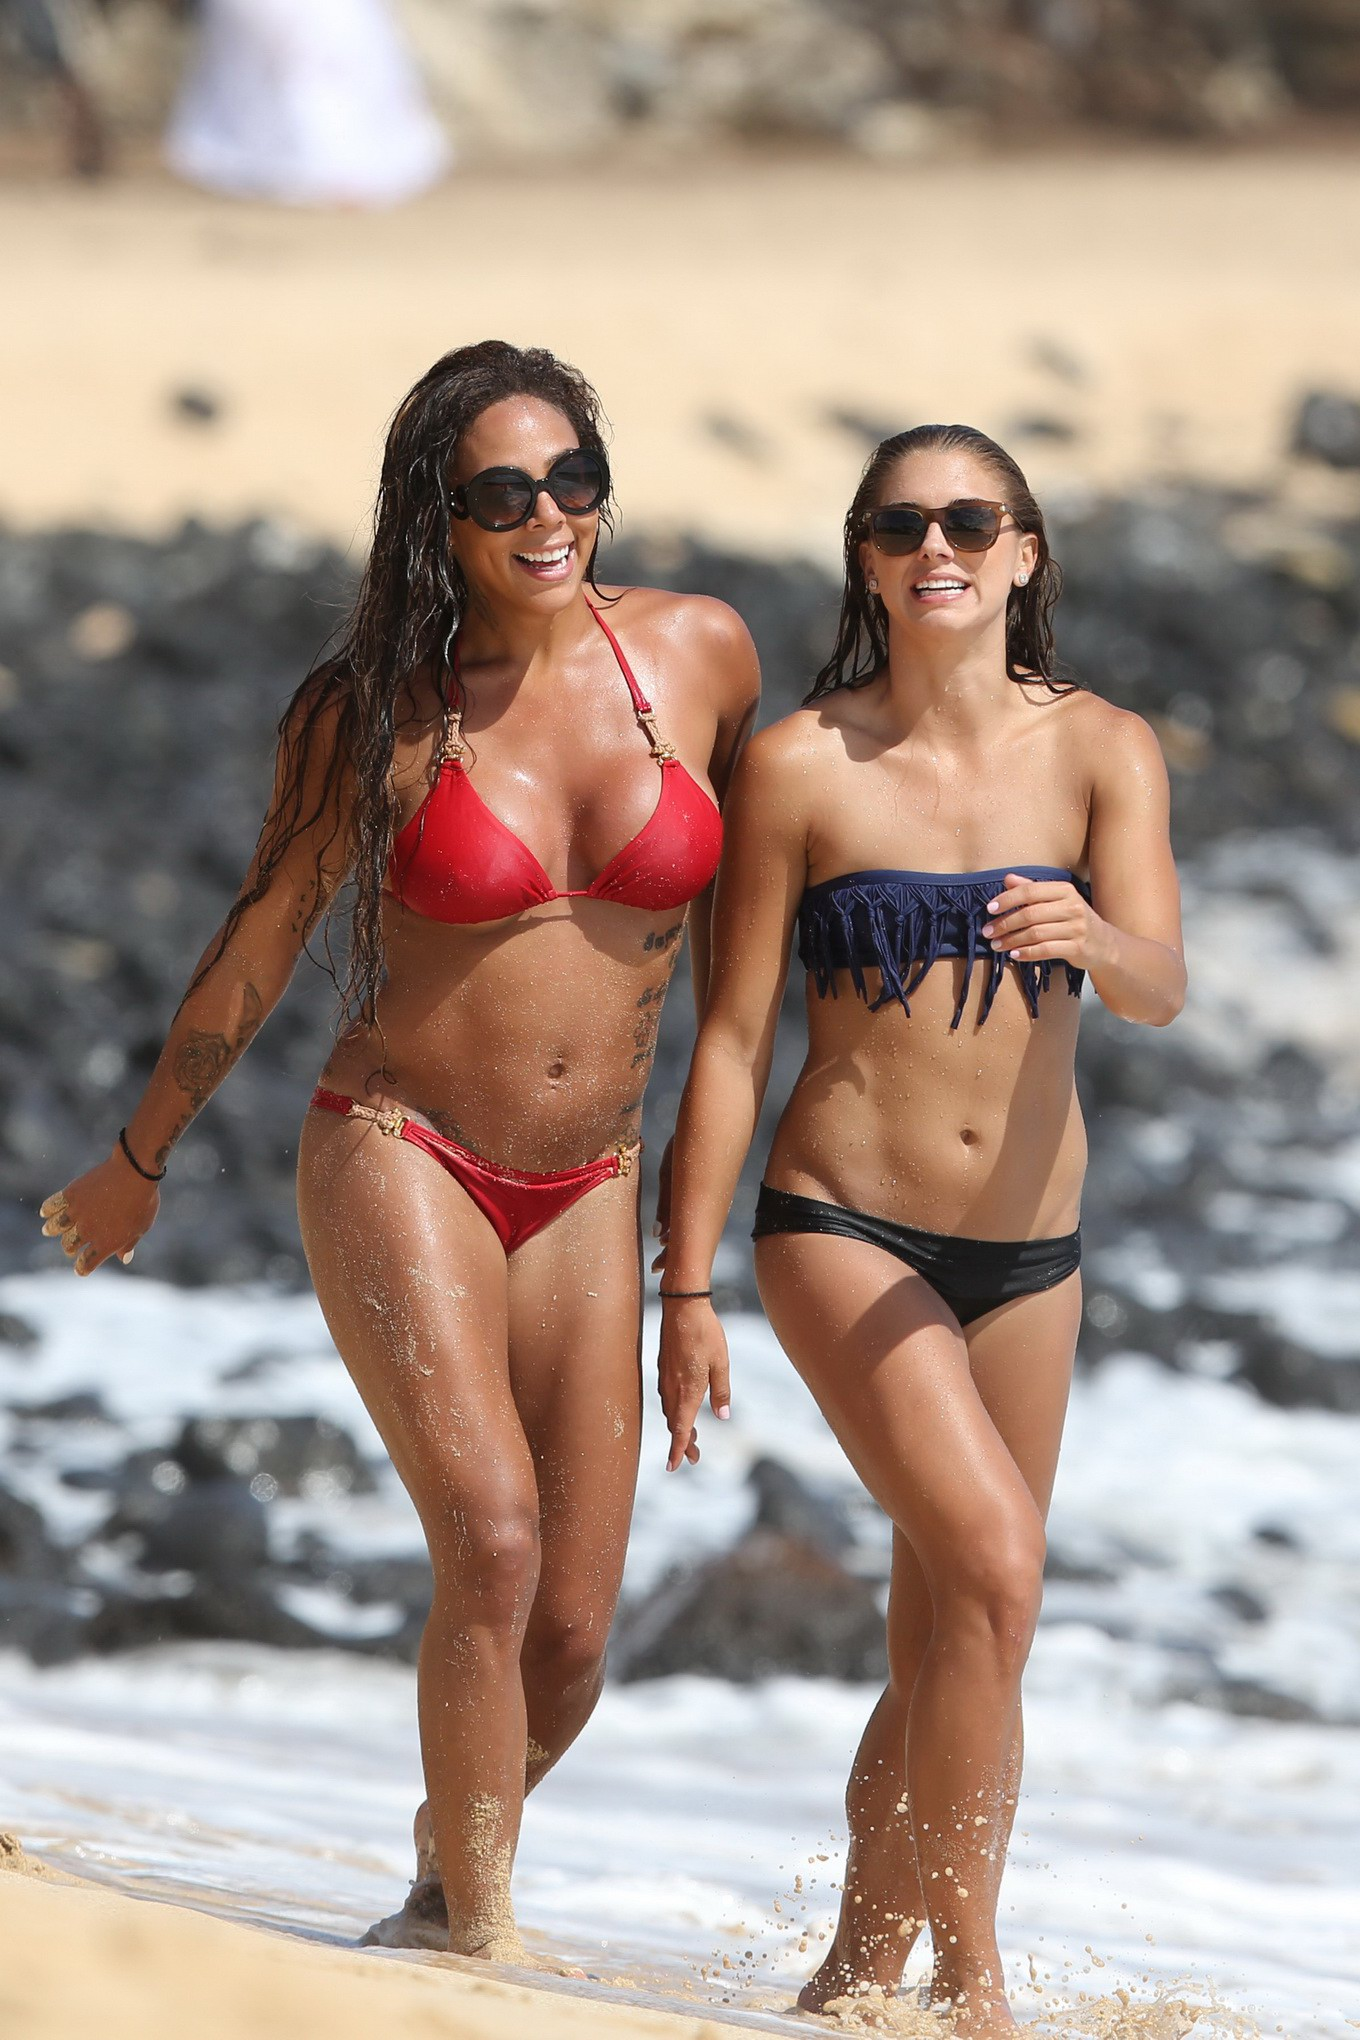 leroux showing off their hot bikini bodies at the beach in hawaii